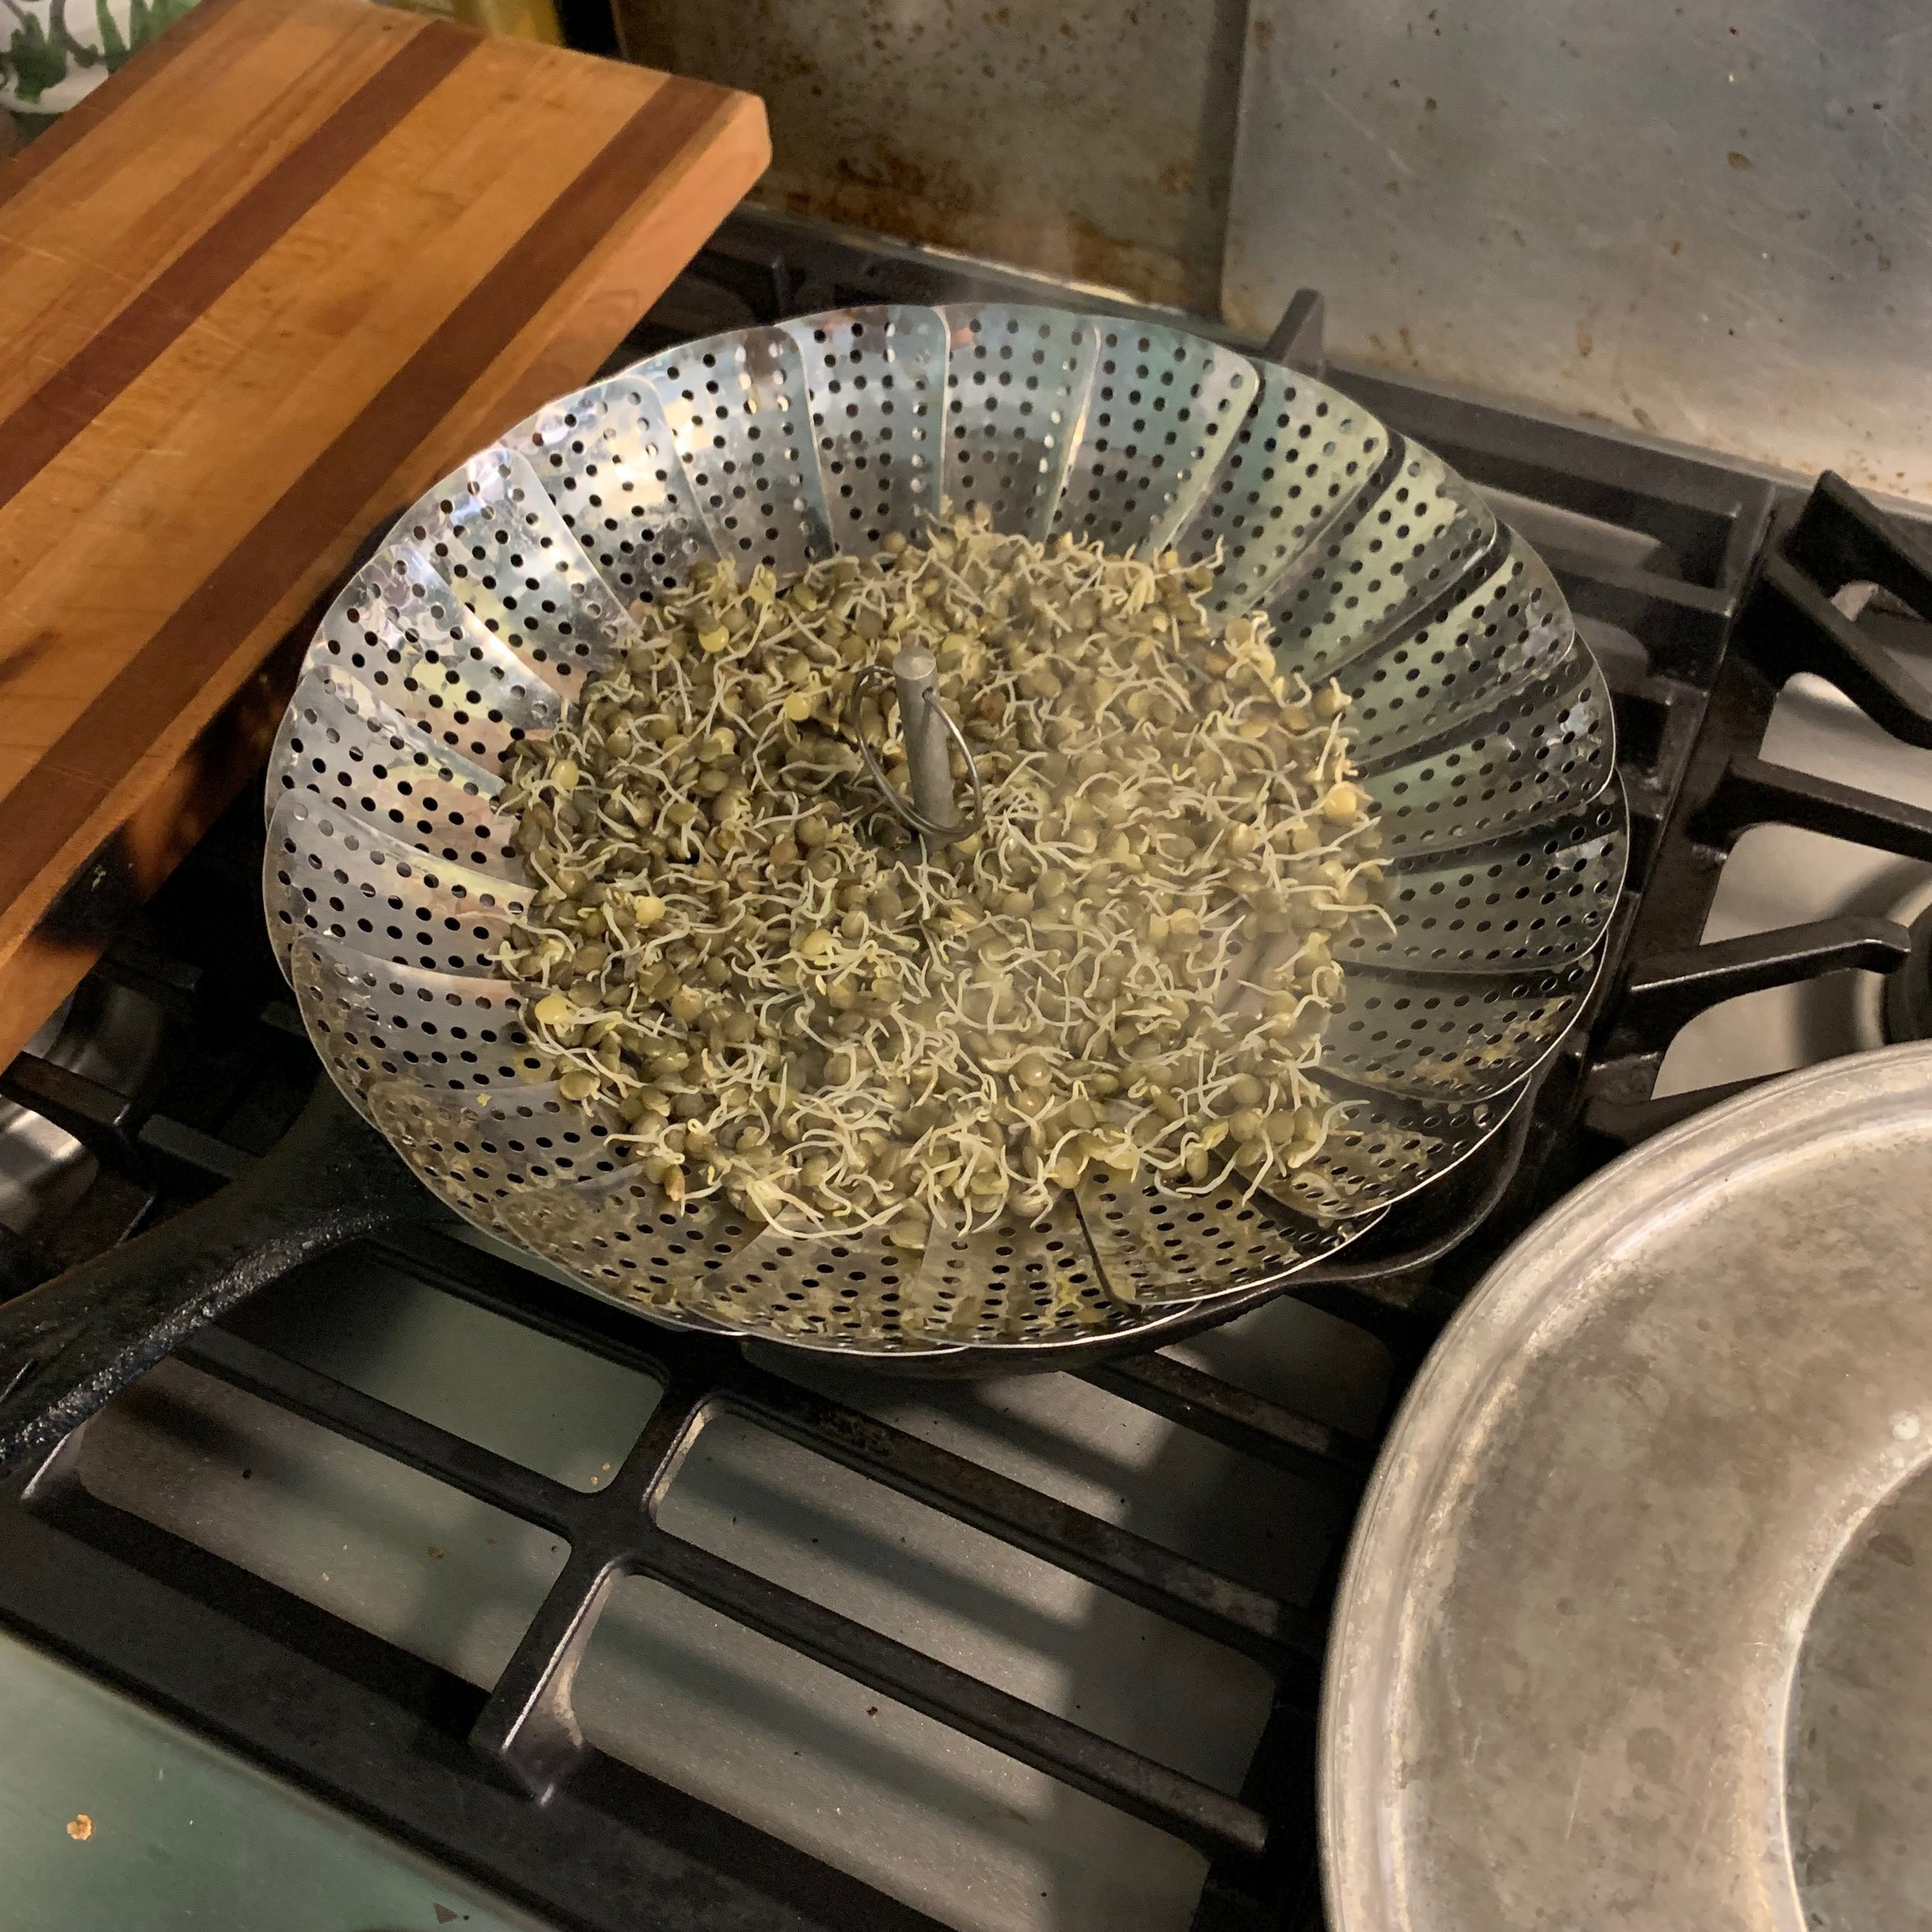 sprouted lentils in a steamer over a cast iron pan with water, I used any large lid to hold in the steam.